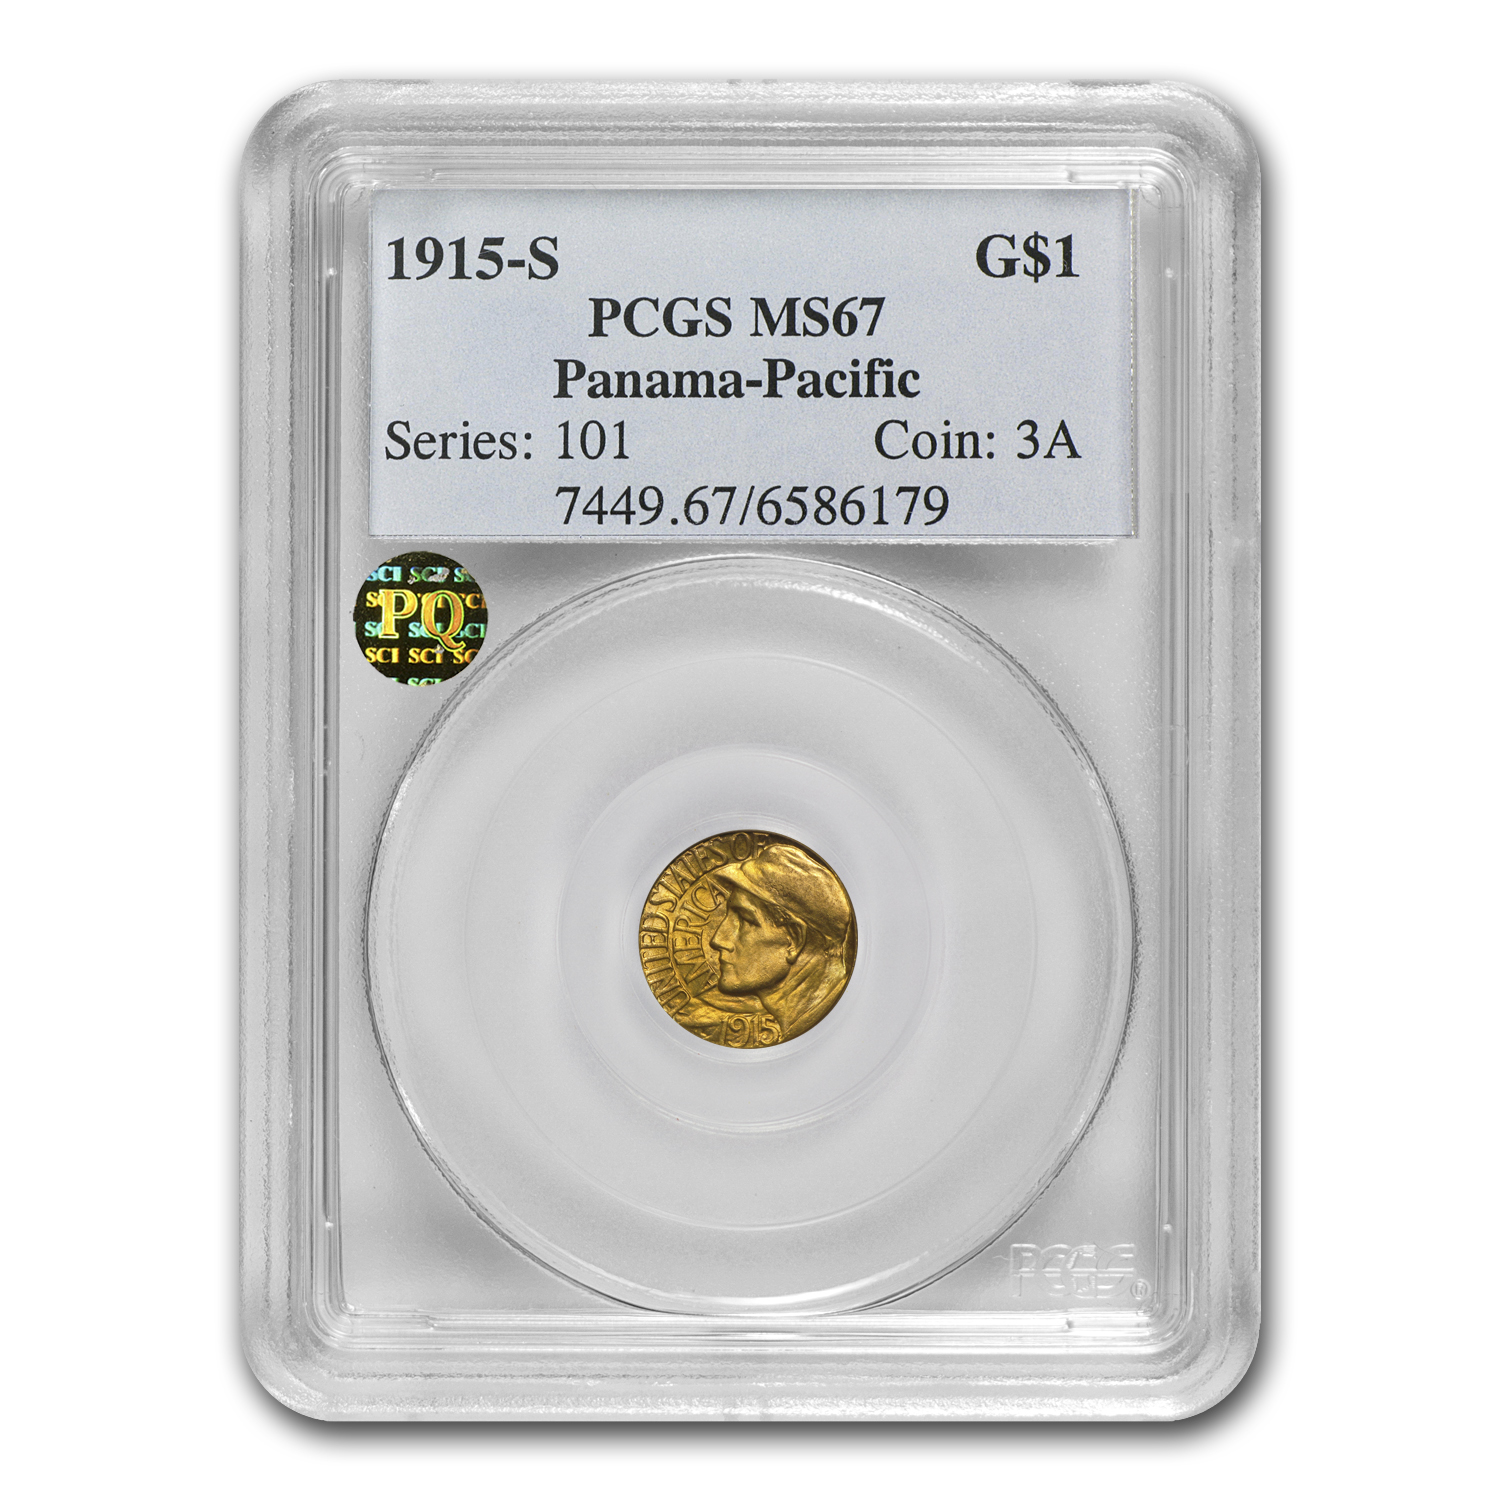 1915-S Gold $1.00 Panama-Pacific MS-67 PCGS (Finest Known)